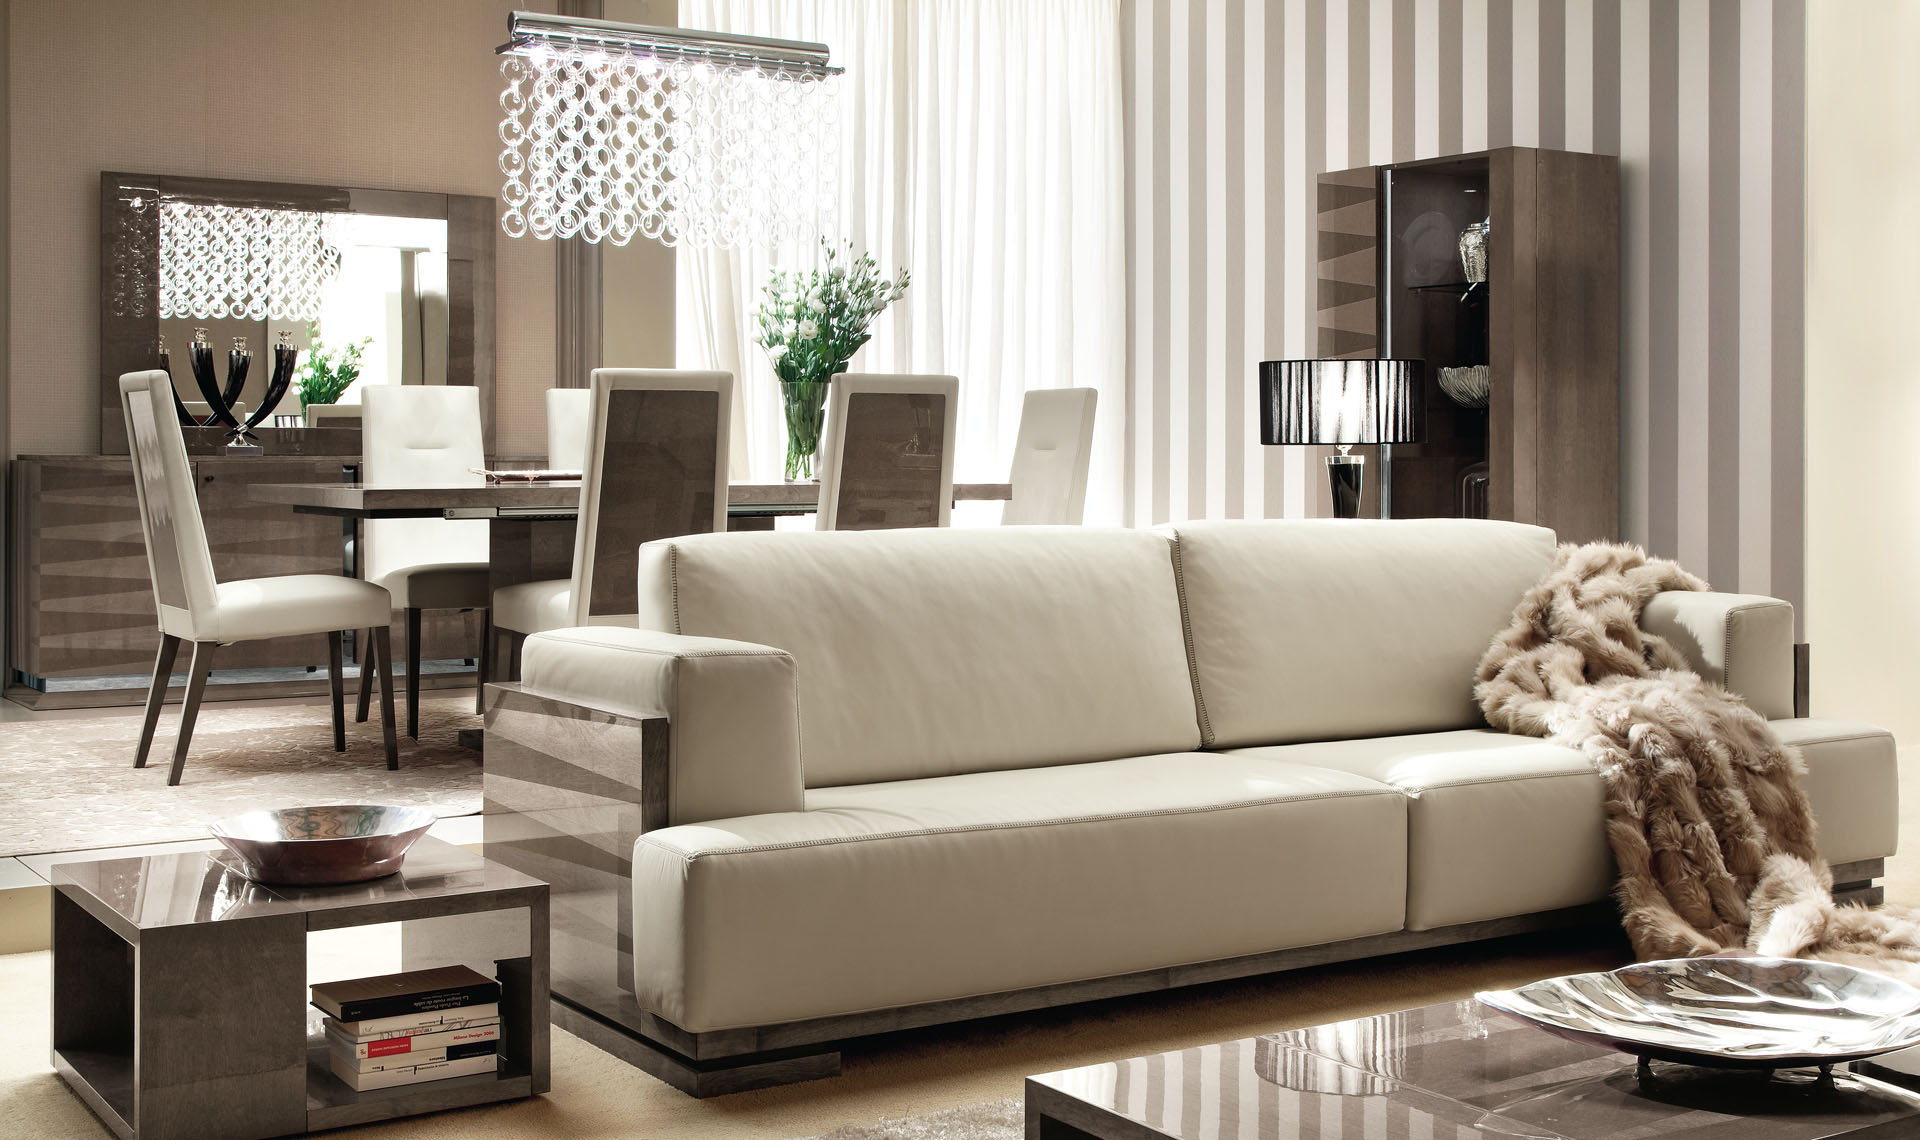 Monaco Living Room Overview 1